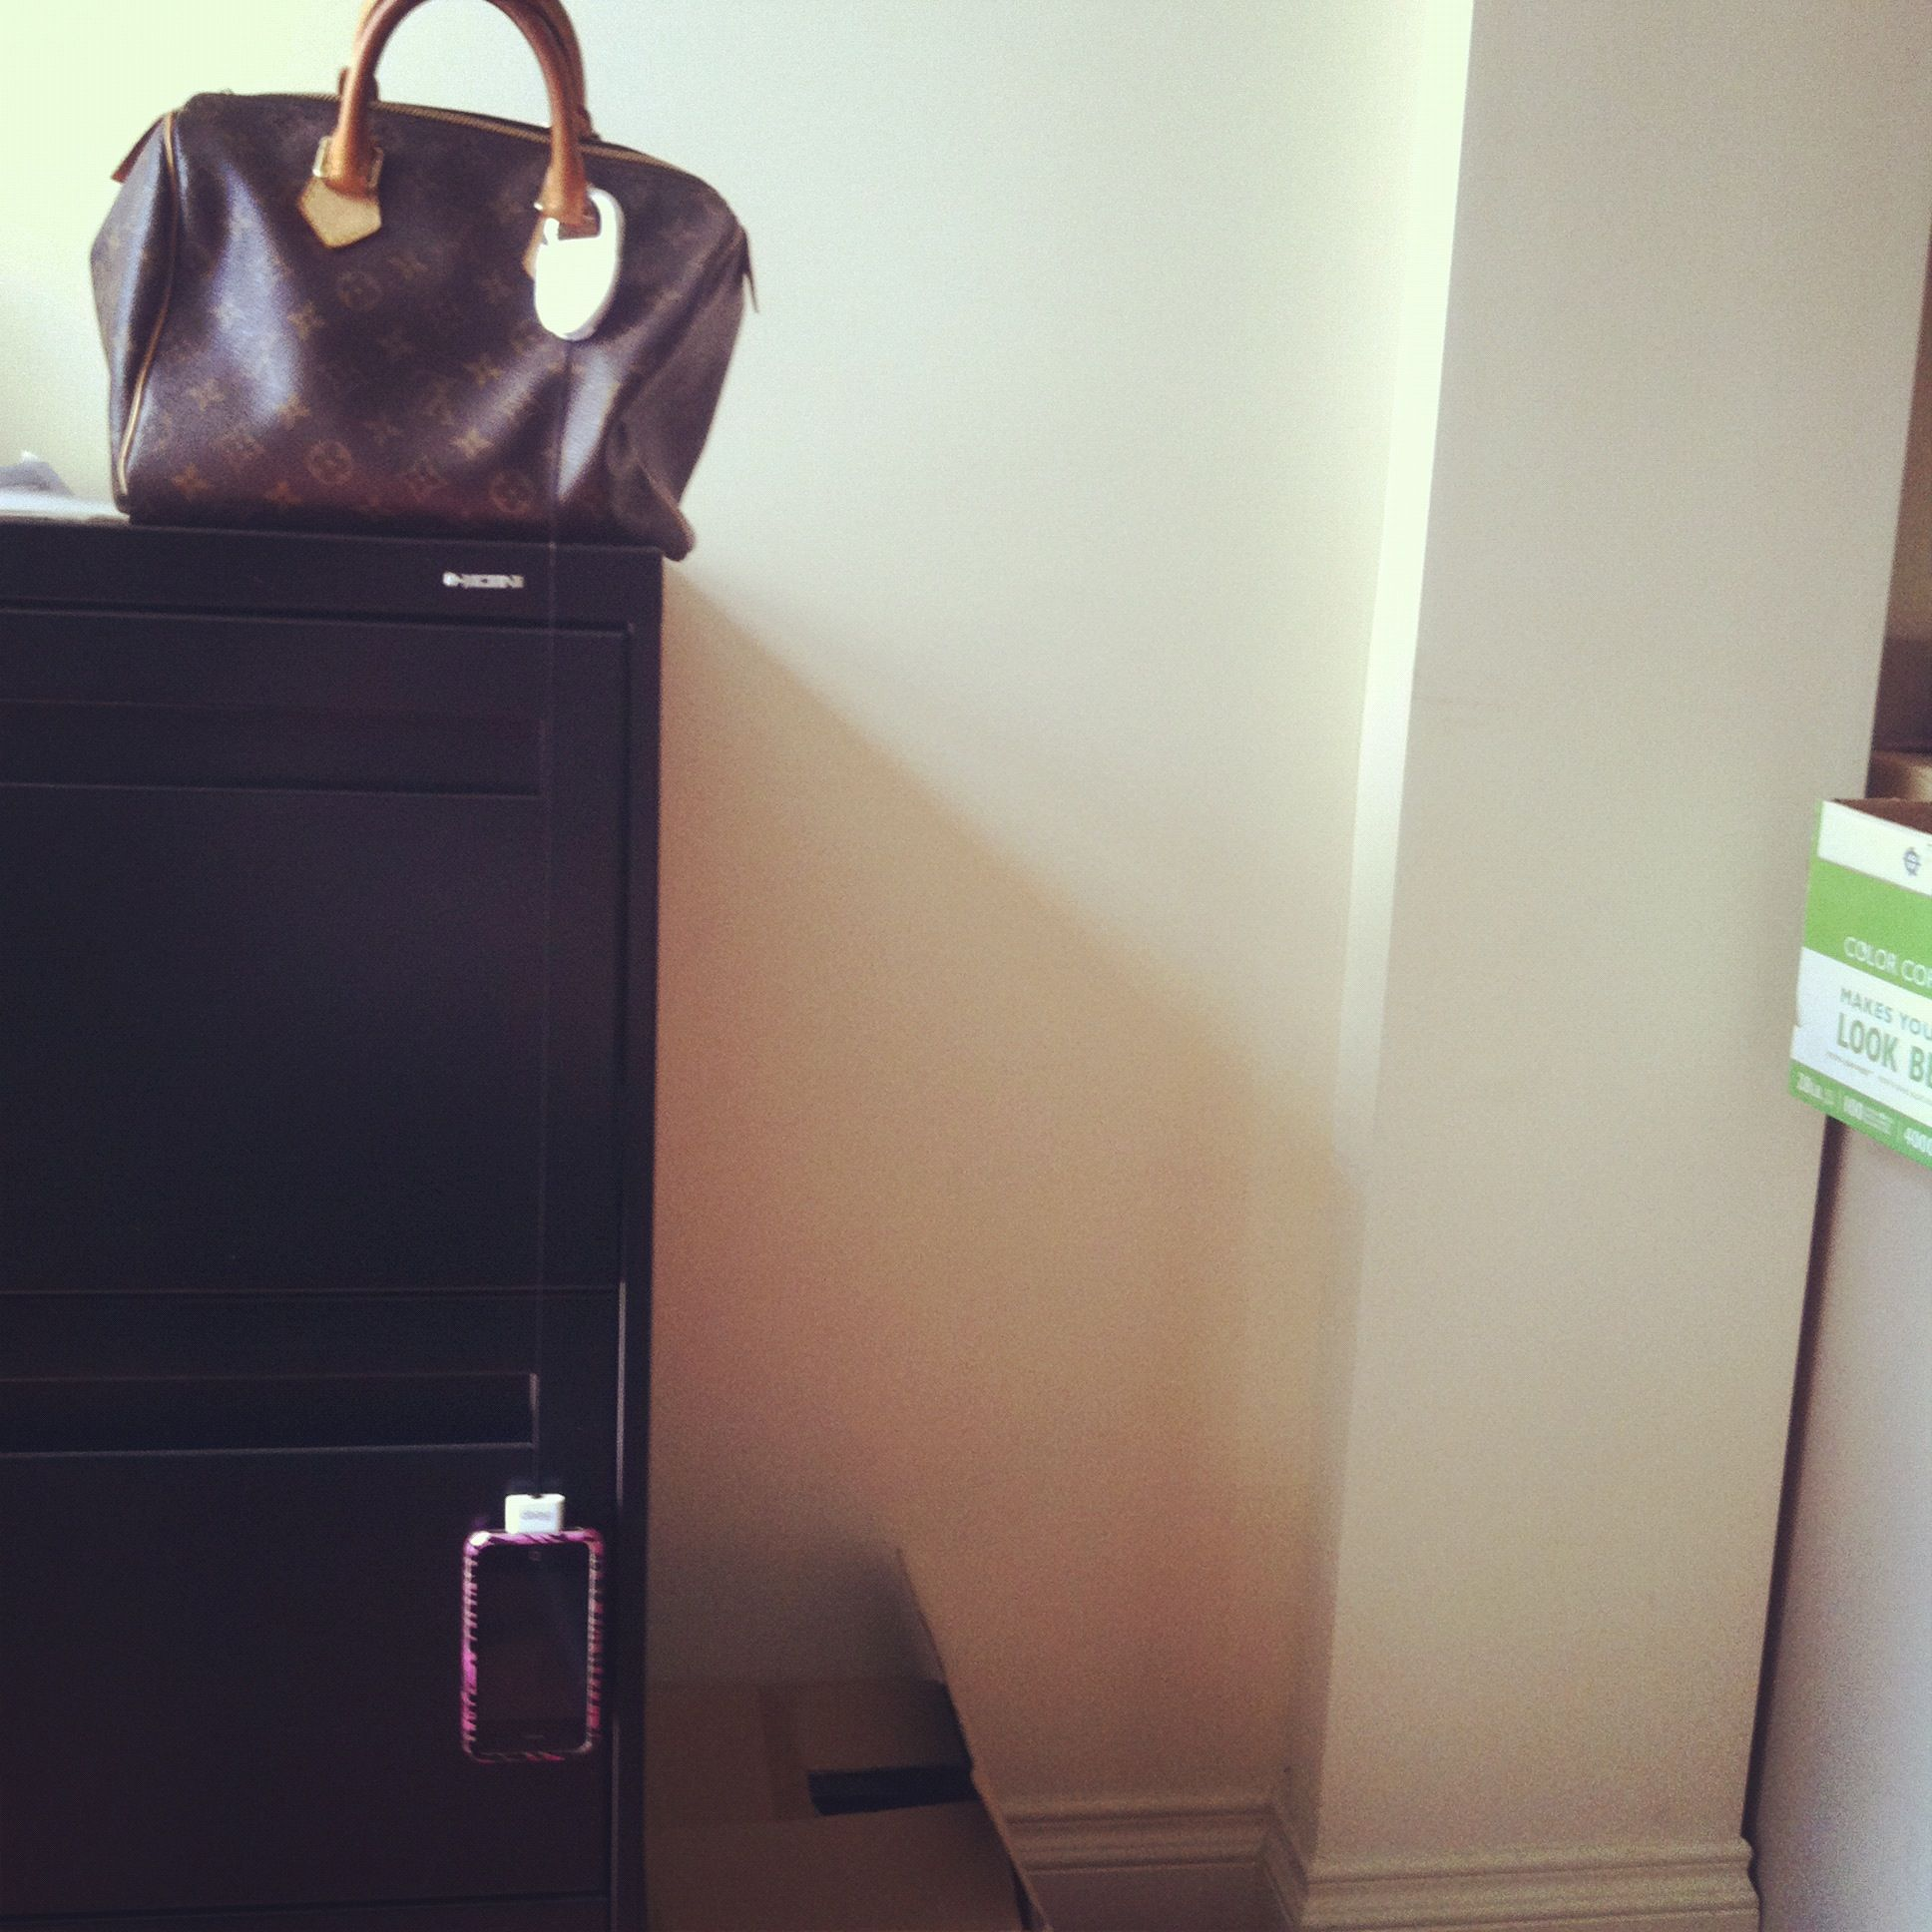 iKeep Secure with a Louis Vuitton